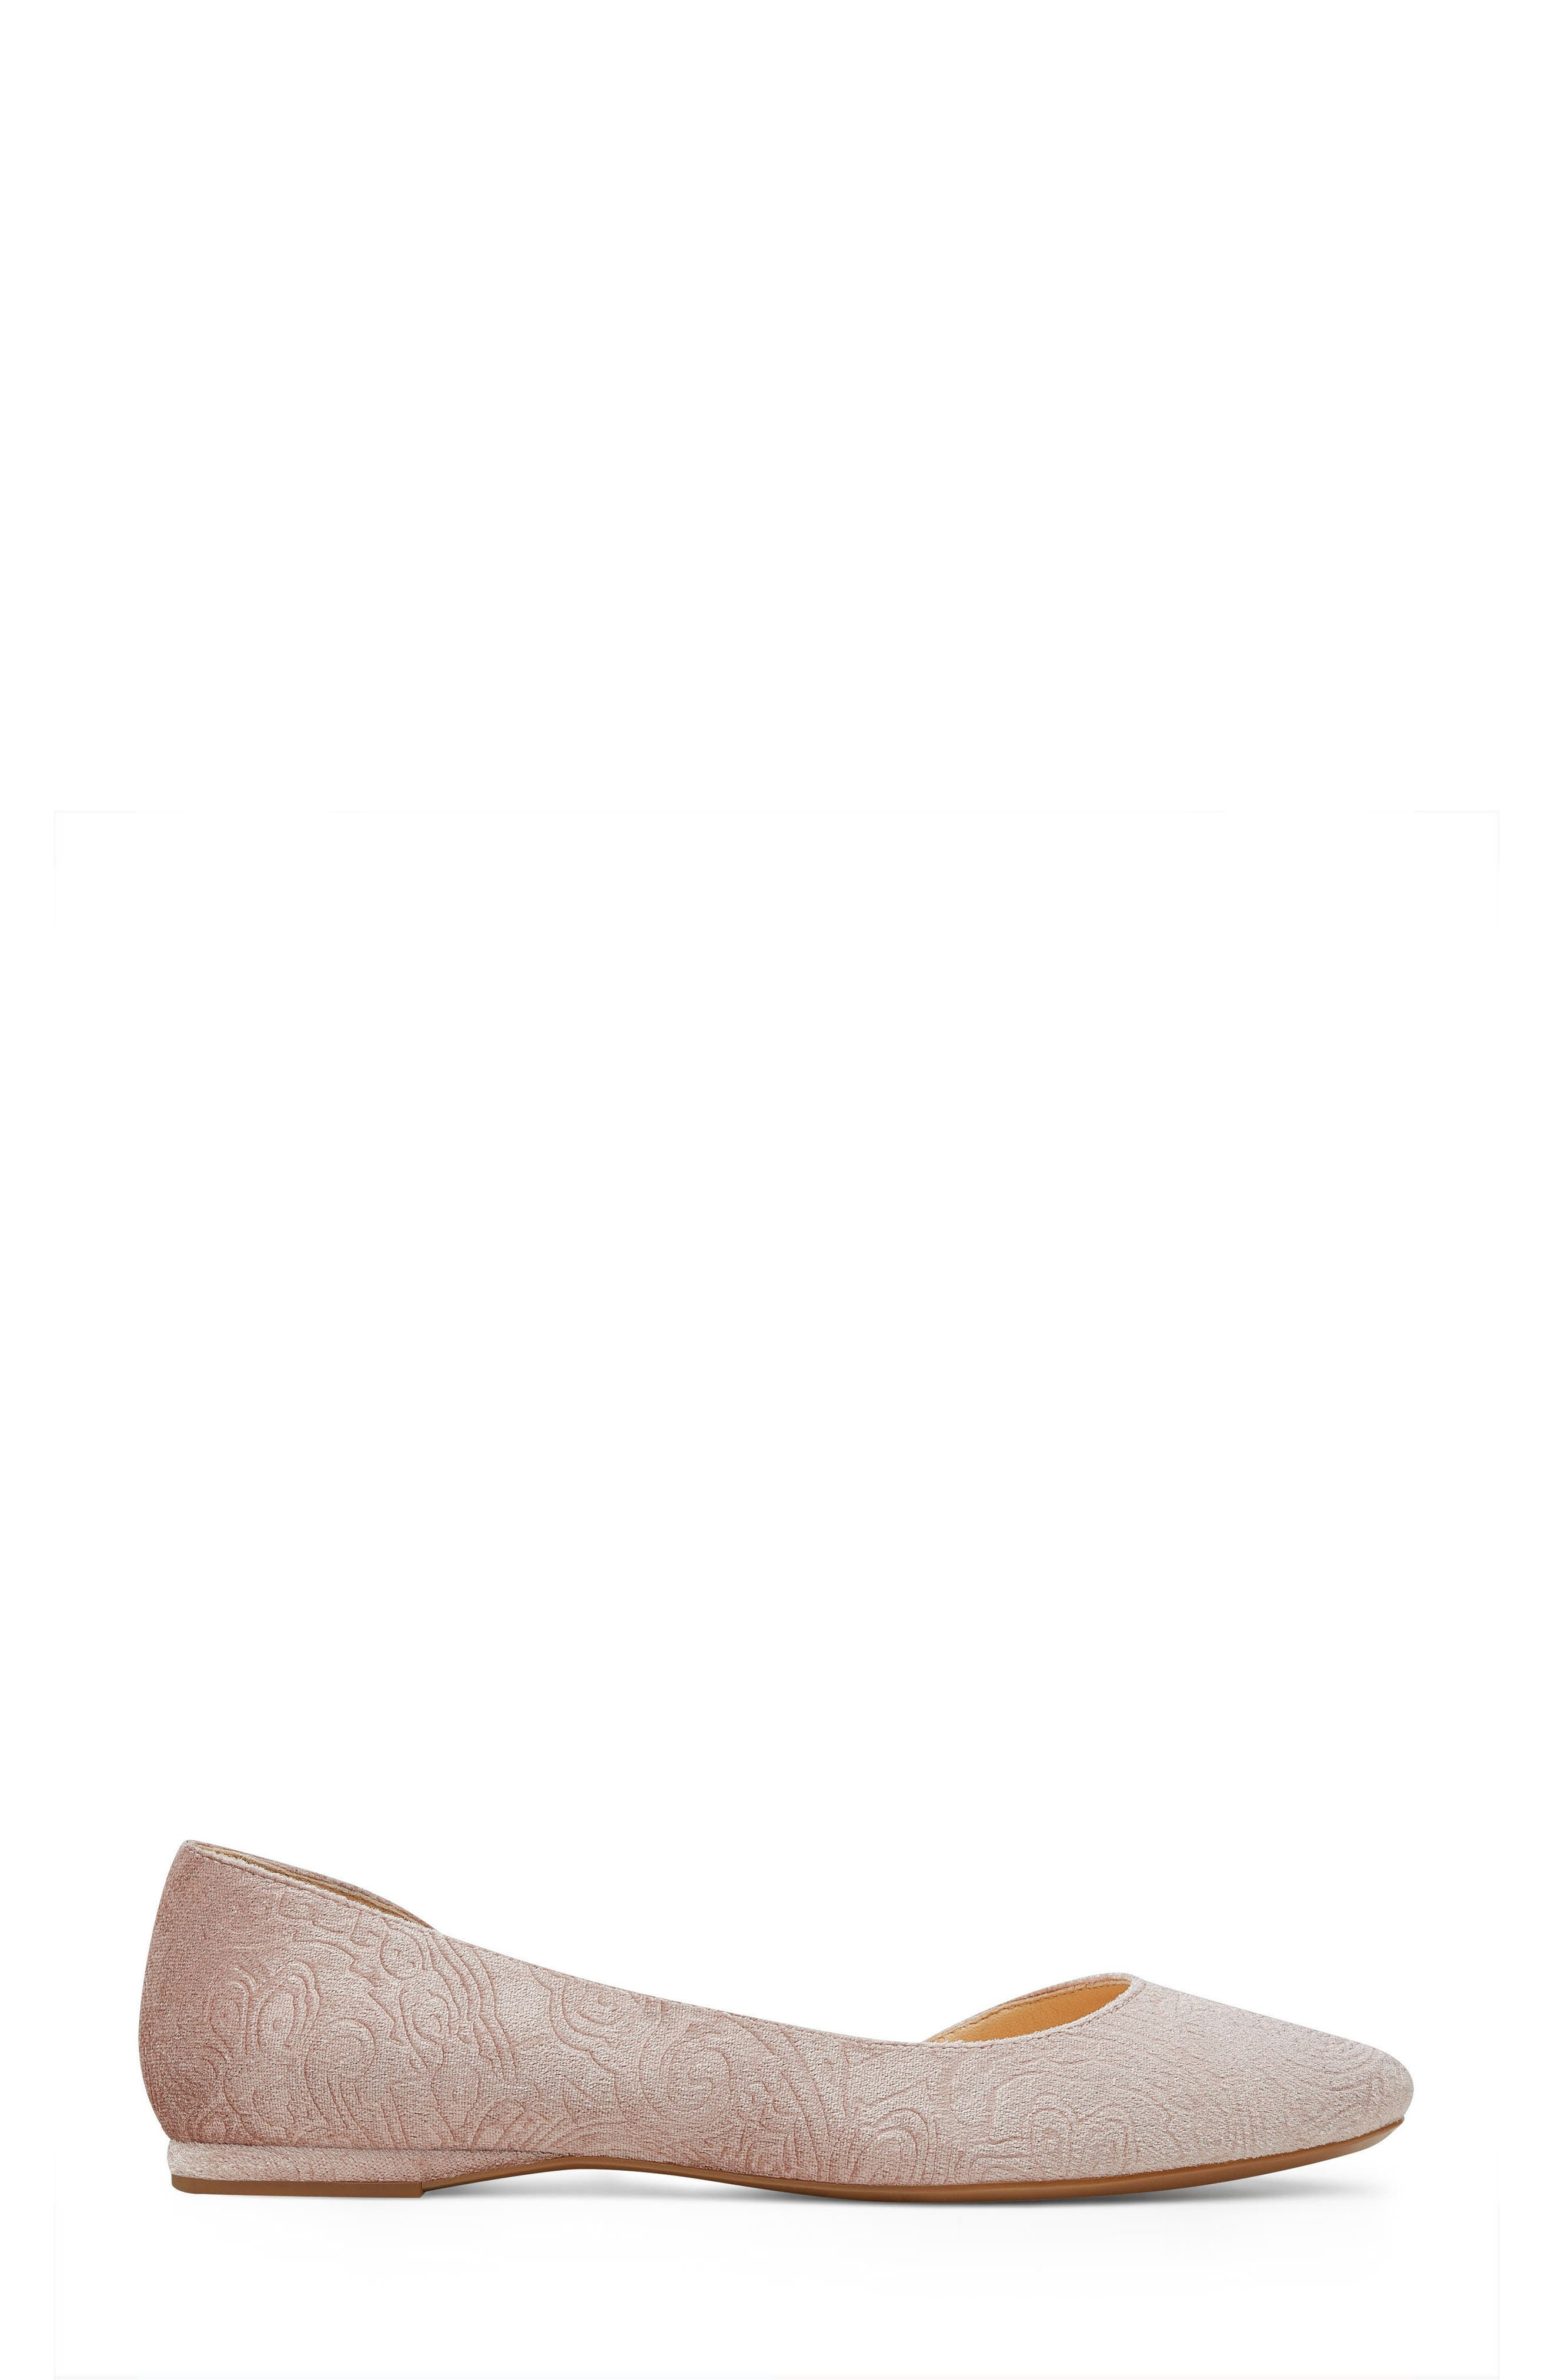 Spruce d'Orsay Flat,                             Alternate thumbnail 3, color,                             Natural Fabric